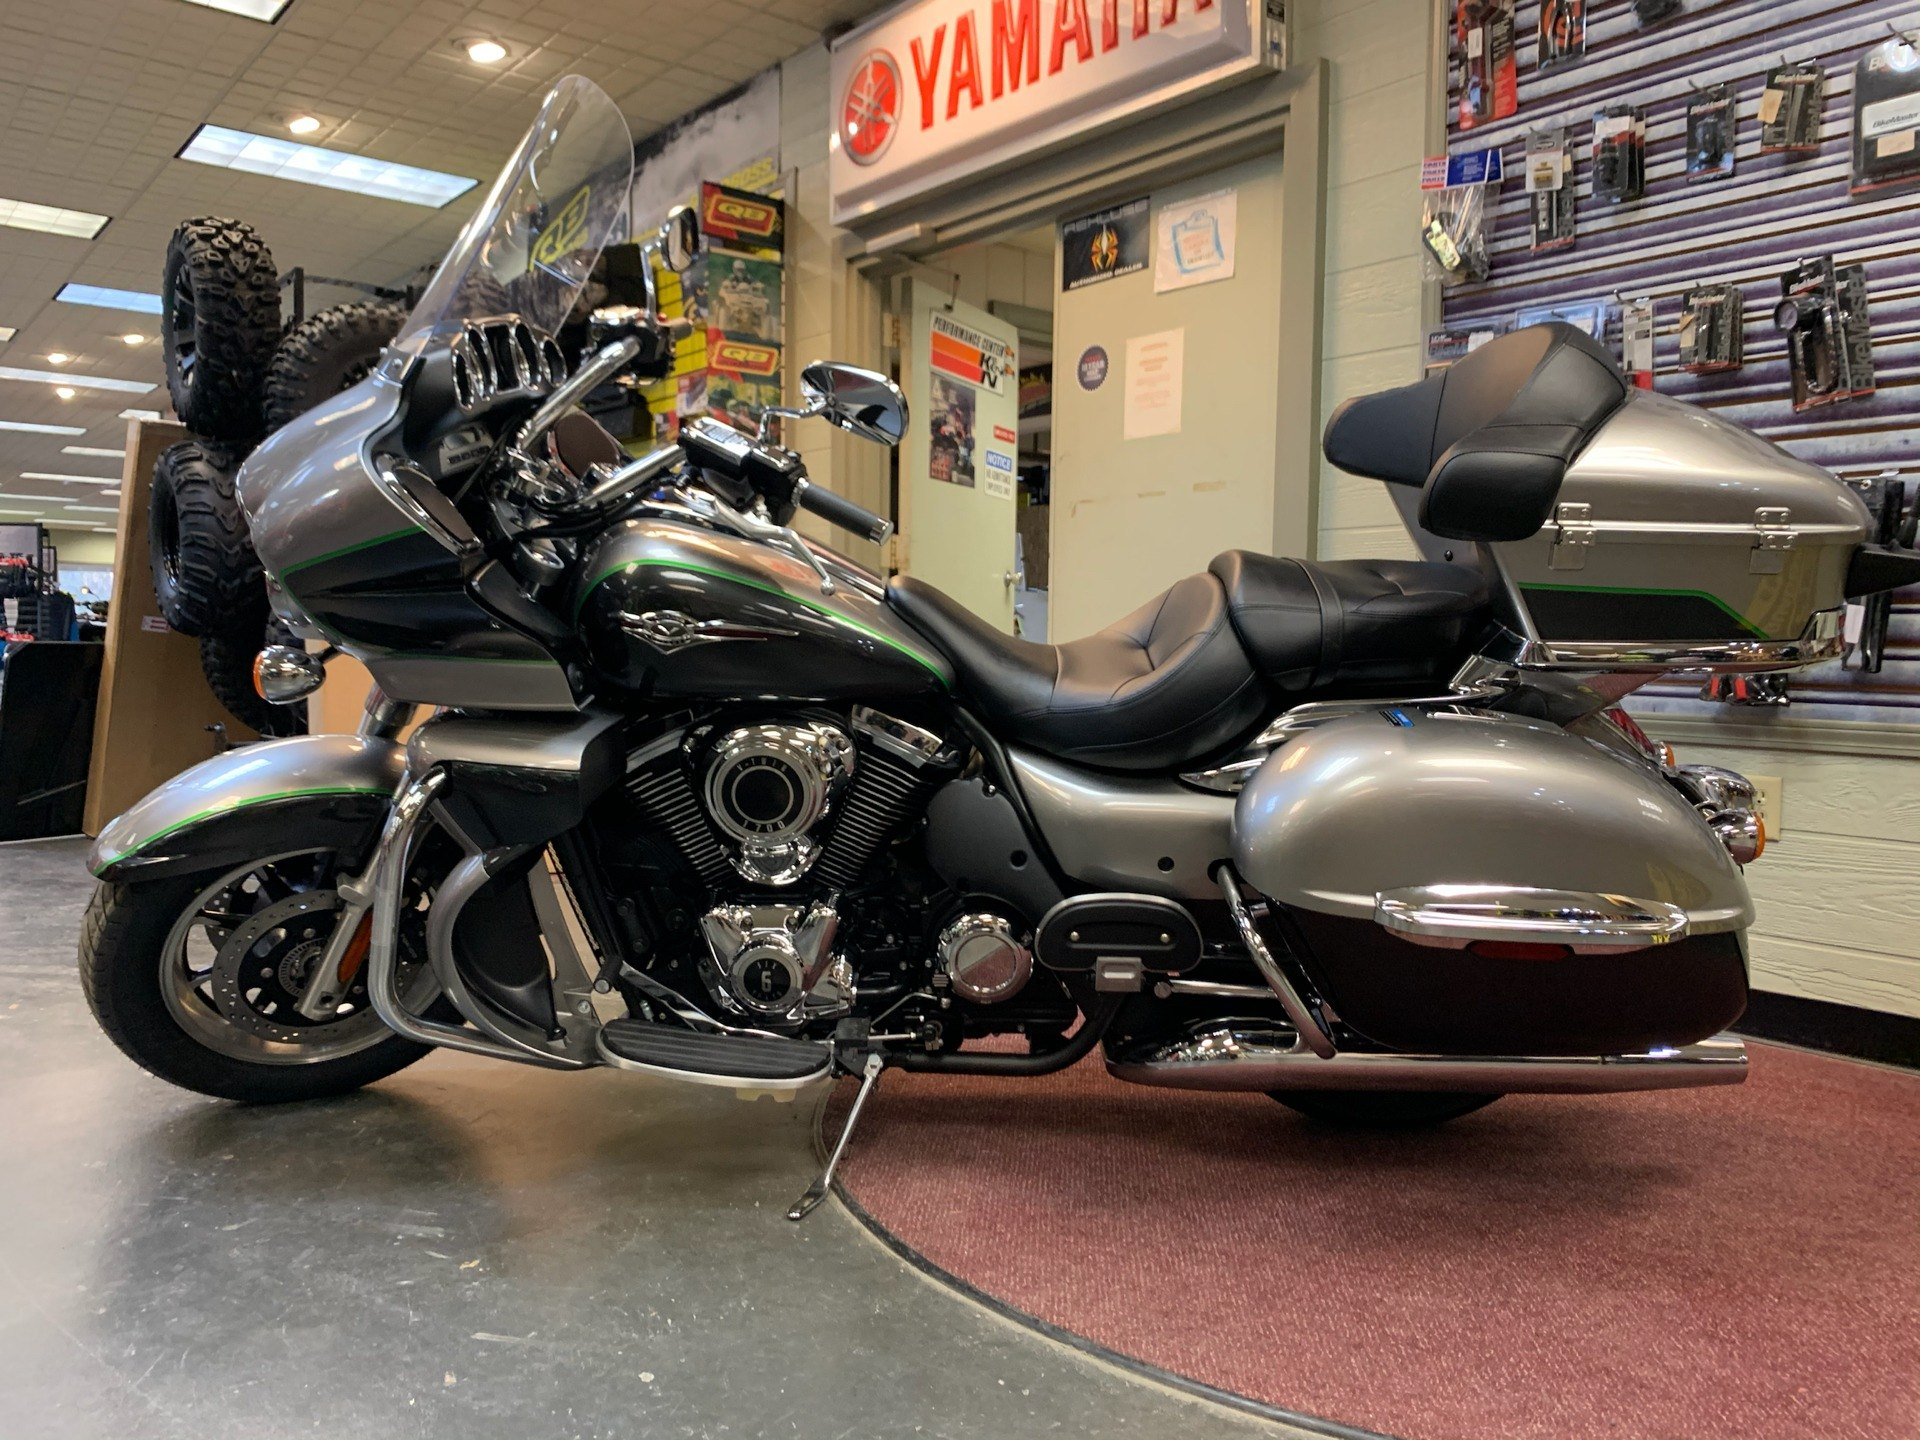 2020 Kawasaki Vulcan 1700 Voyager ABS in Petersburg, West Virginia - Photo 12